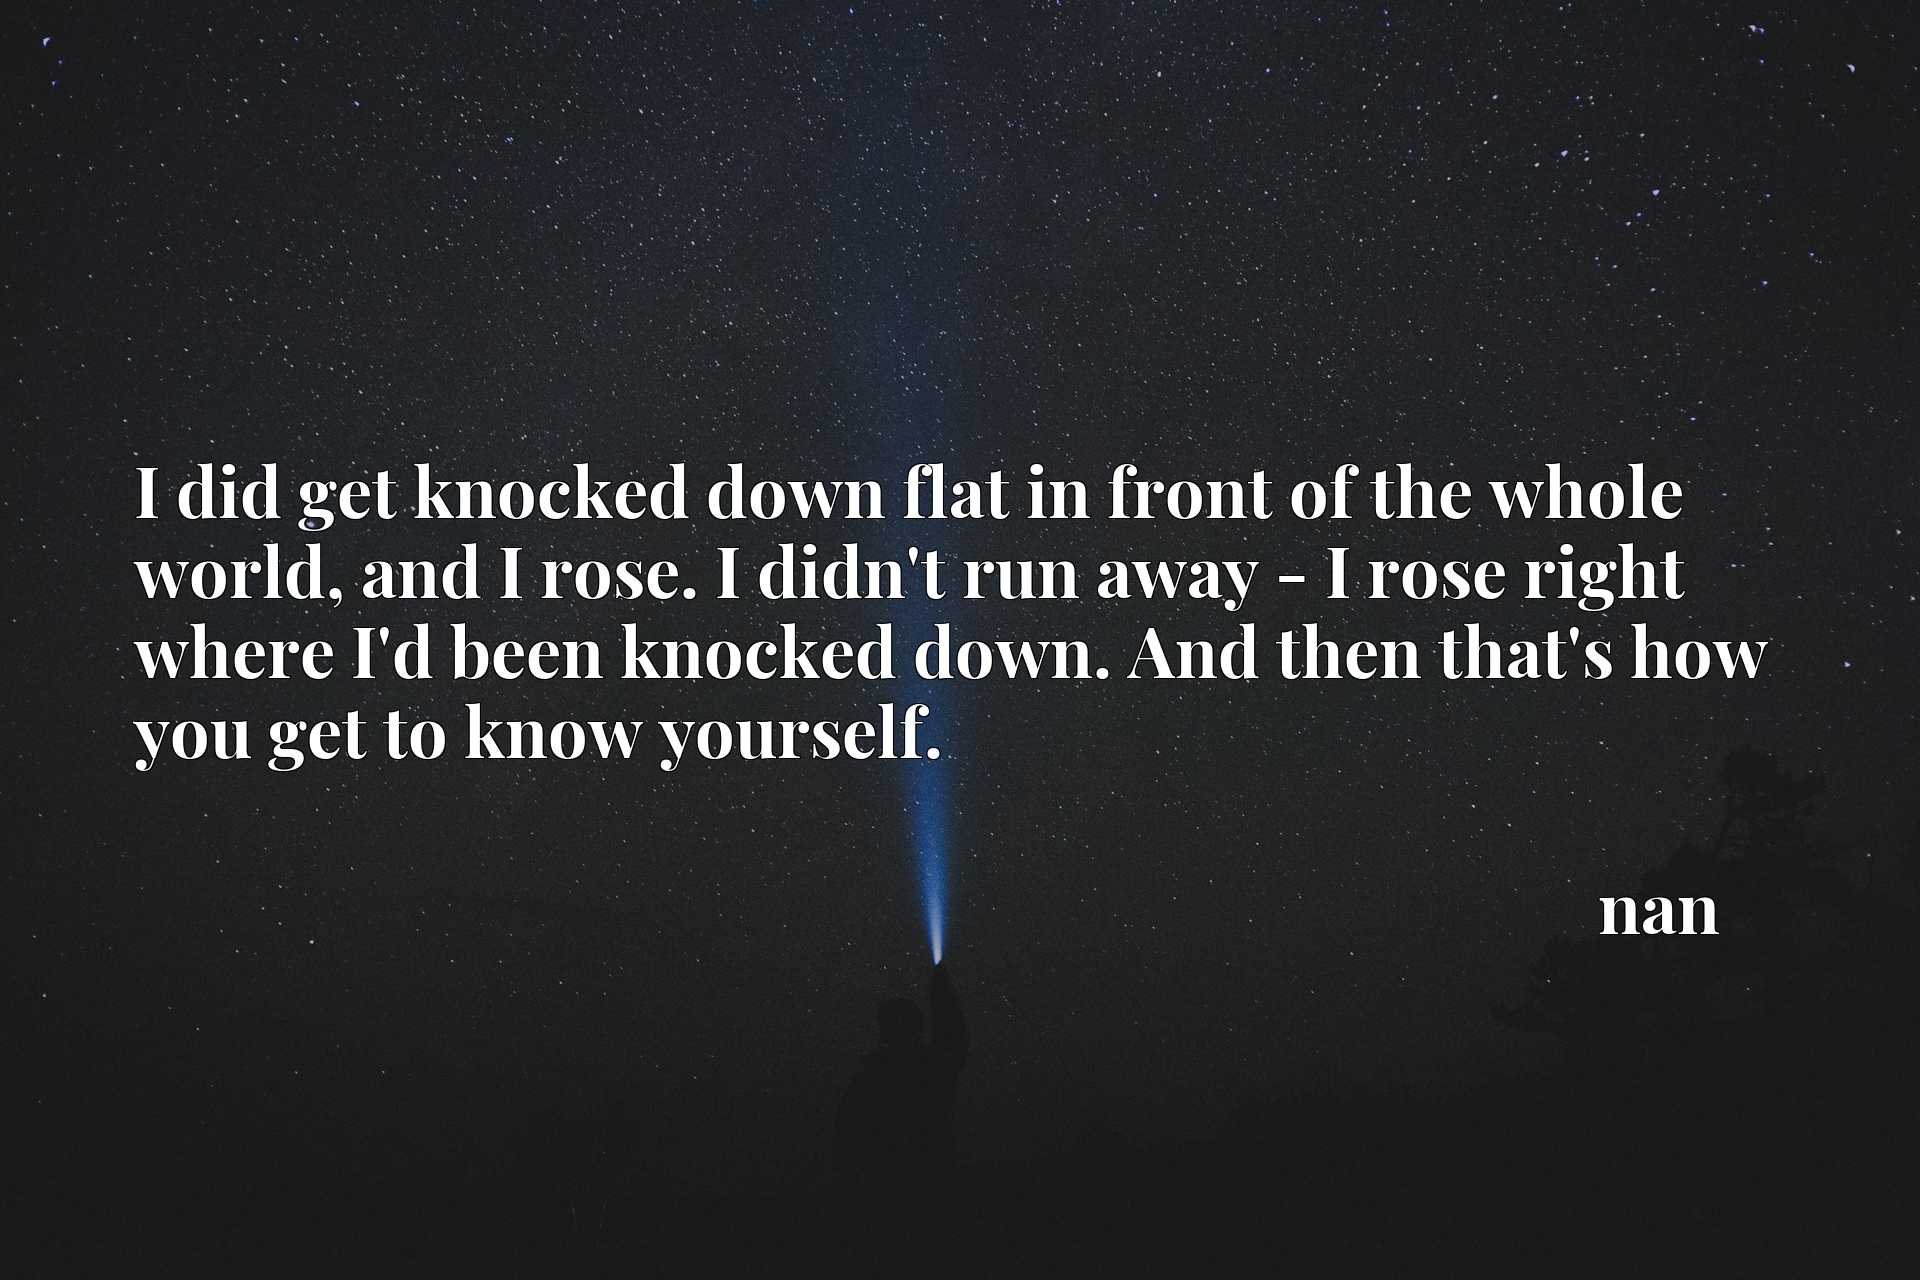 I did get knocked down flat in front of the whole world, and I rose. I didn't run away - I rose right where I'd been knocked down. And then that's how you get to know yourself.